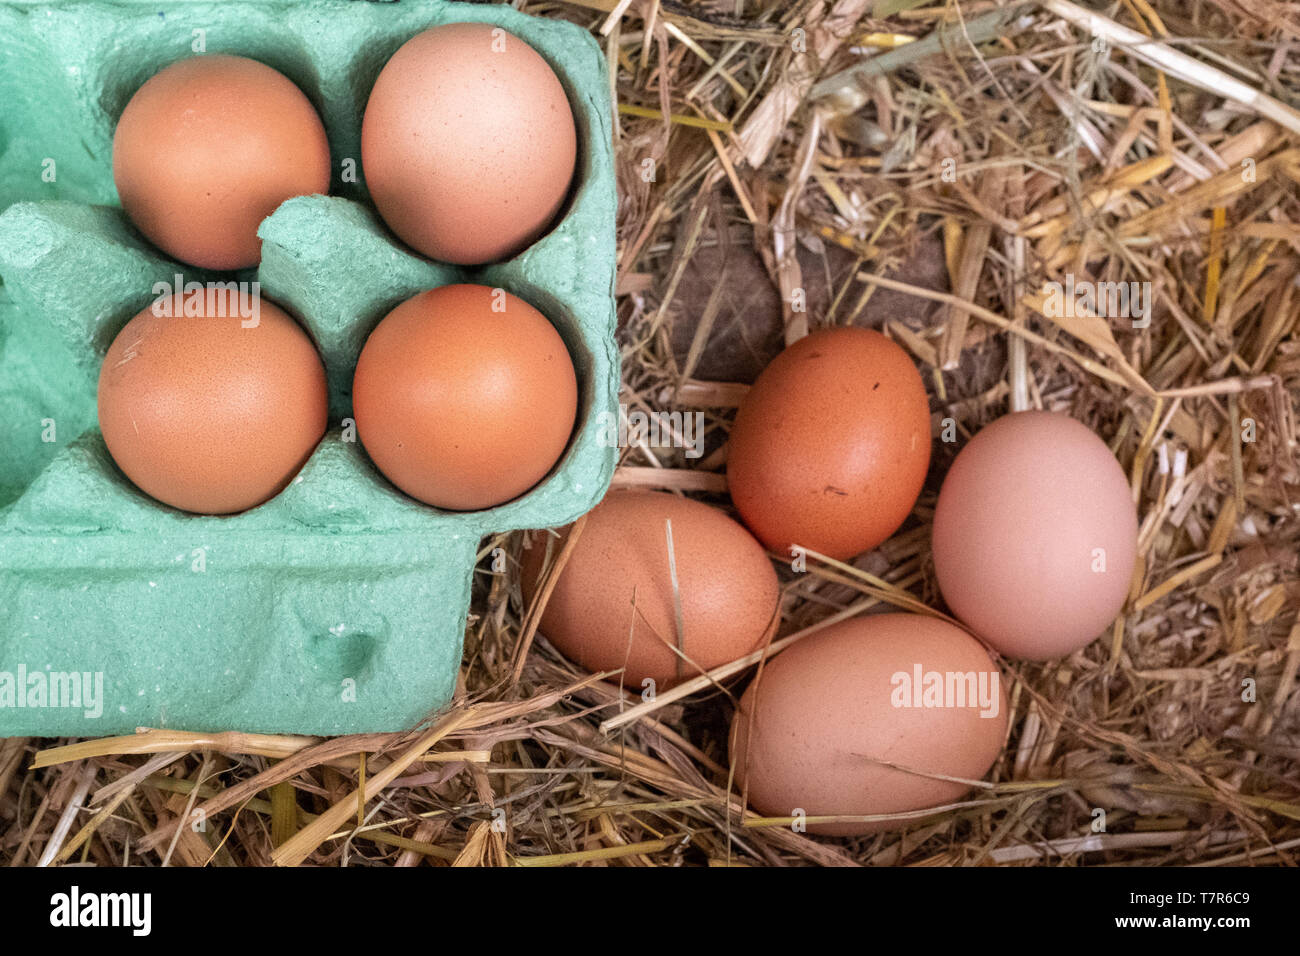 A close up of a collection of brown free range chickens eggs, 4 in a box and 4 still to be collected sitting on a bed of straw. Stock Photo